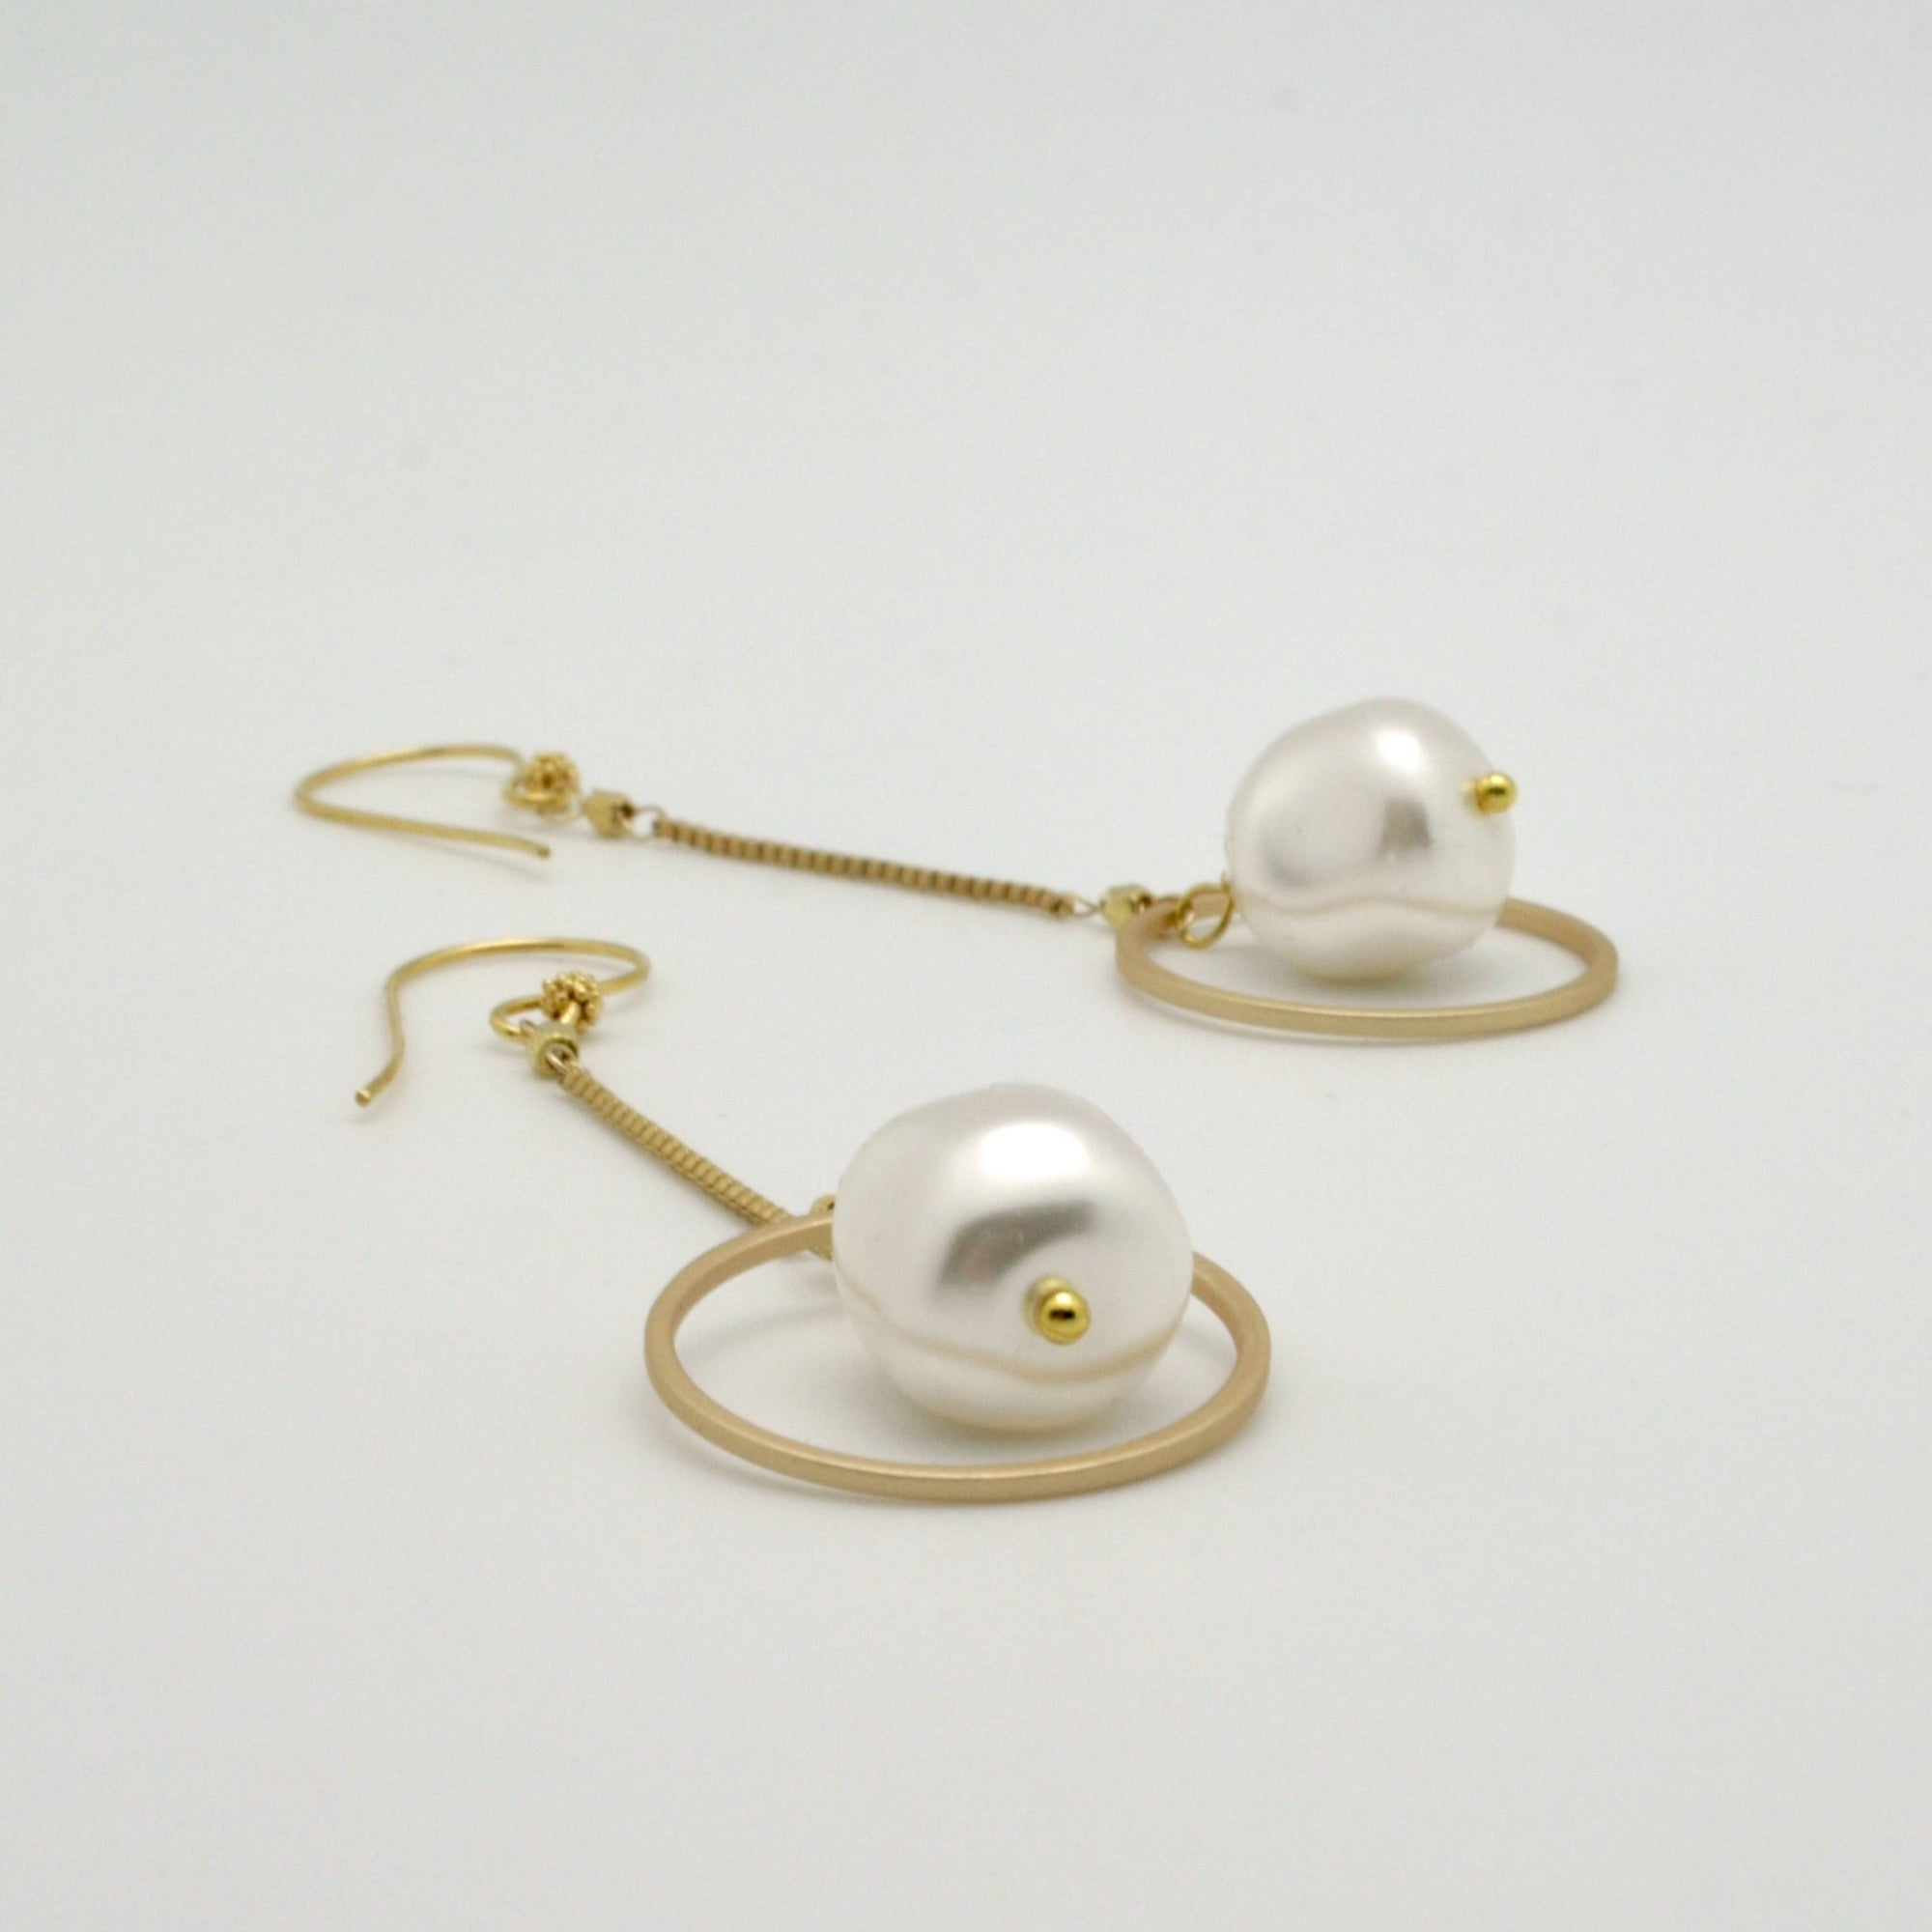 baroque pearl nugget earrings with matte gold circles + fine box chain lying flat